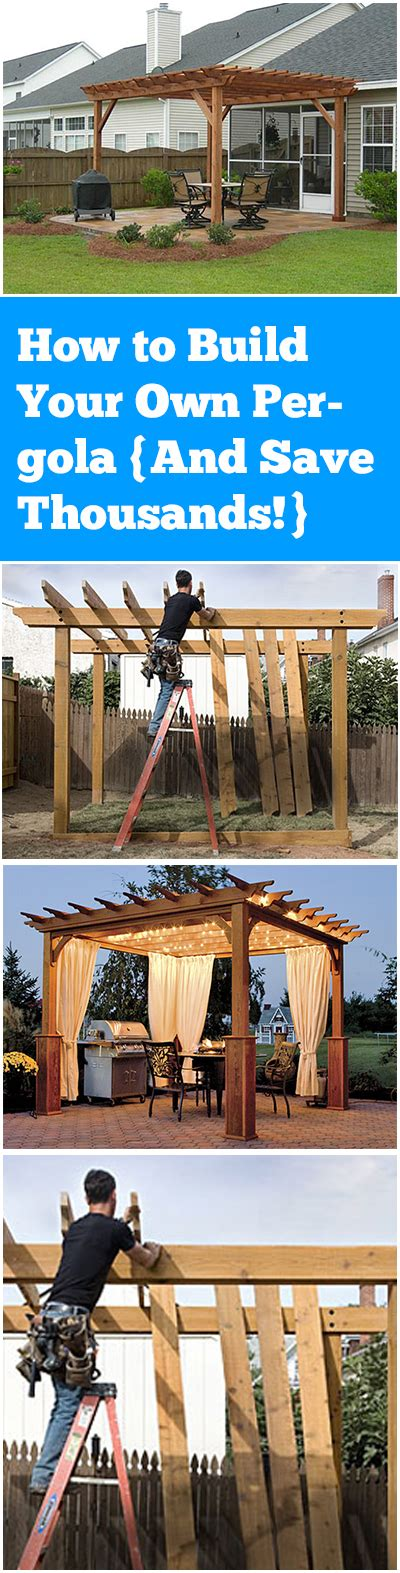 how to make your own pergola how to build your own pergola and save thousands